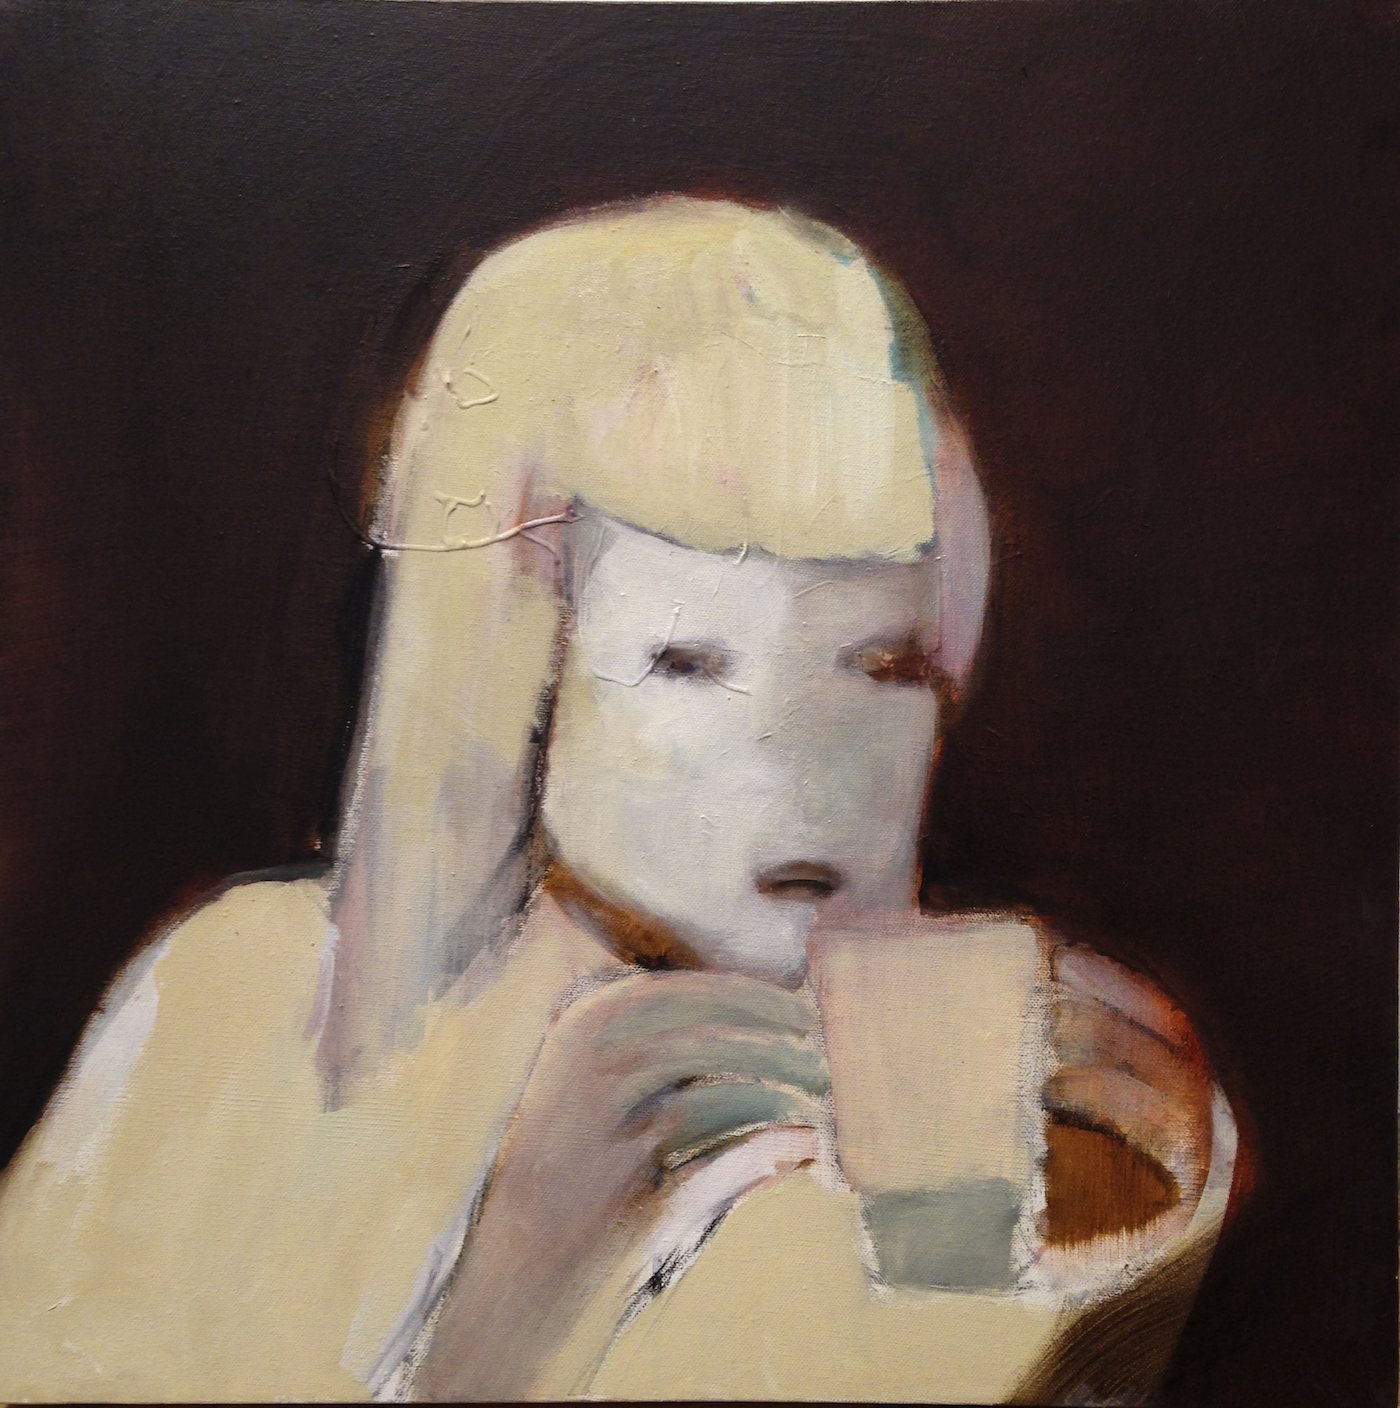 Cup holder_oil paint on canvas_24x24inch_ 2015.jpg